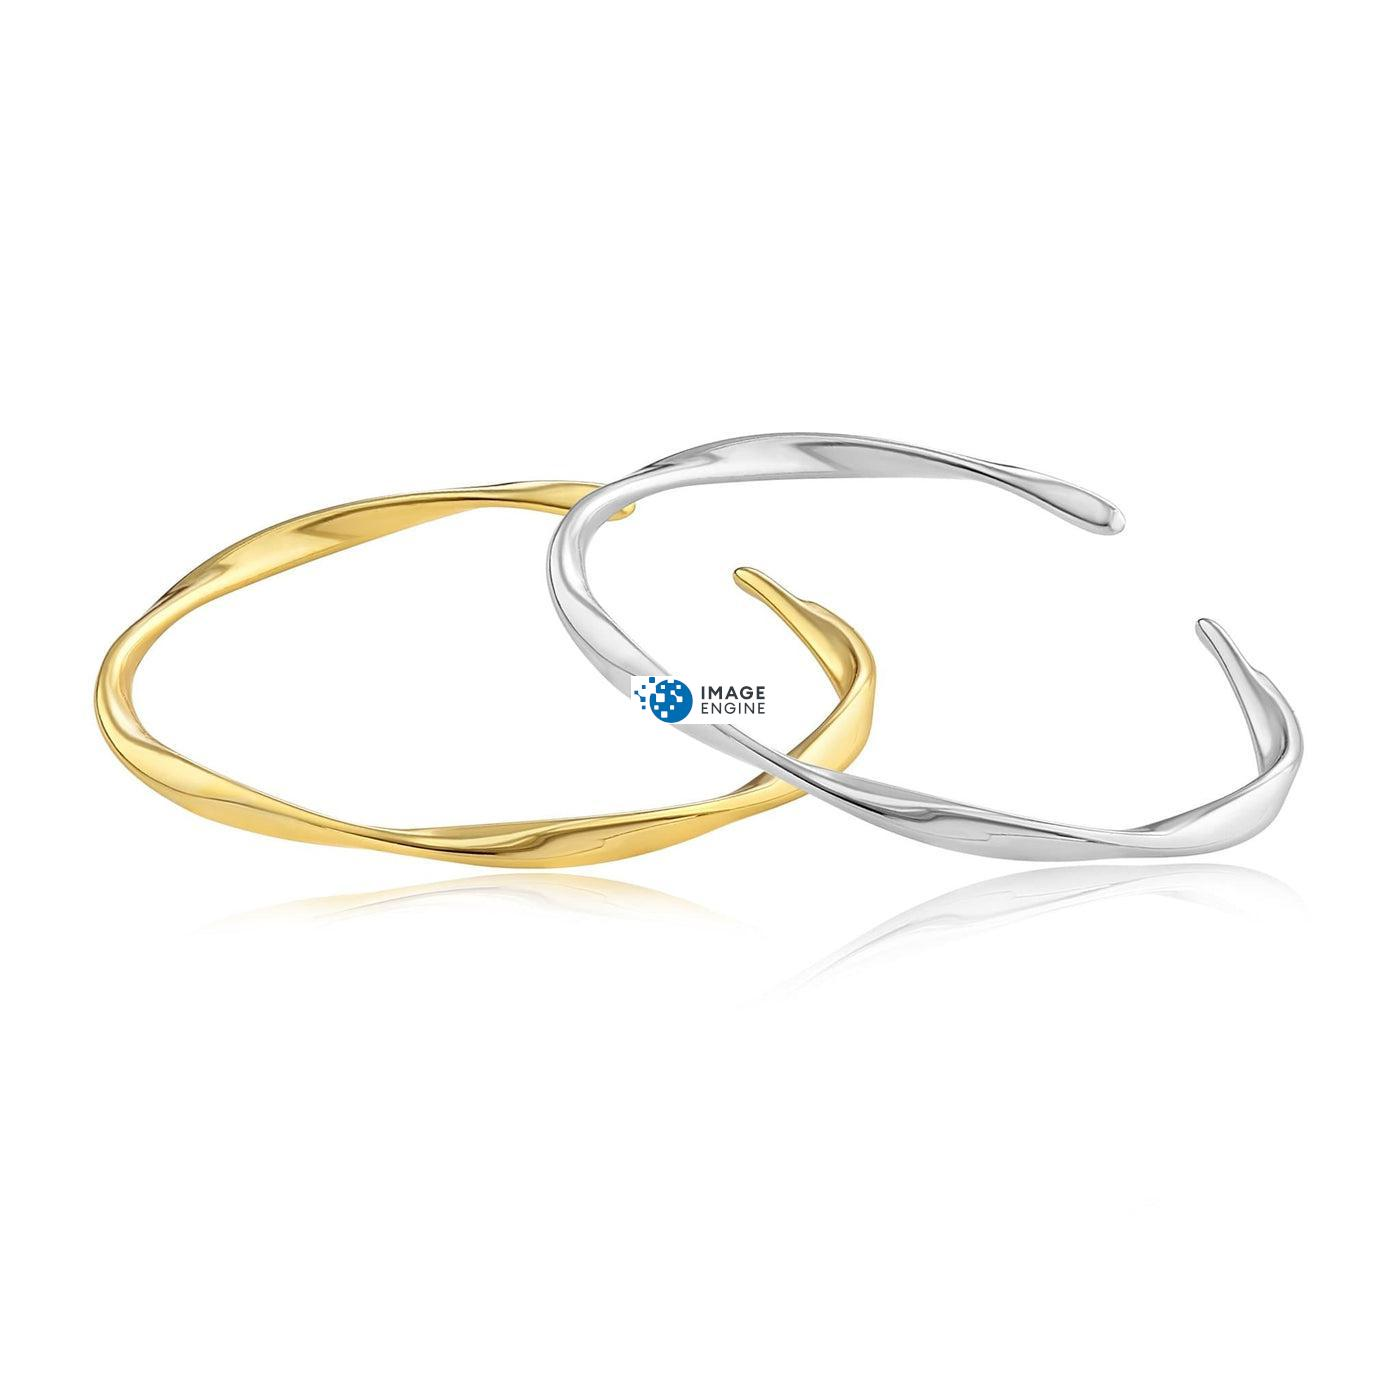 Olivia Twist Ring - Front View Side by Side - 18K Yellow Gold Vermeil and 925 Sterling Silver